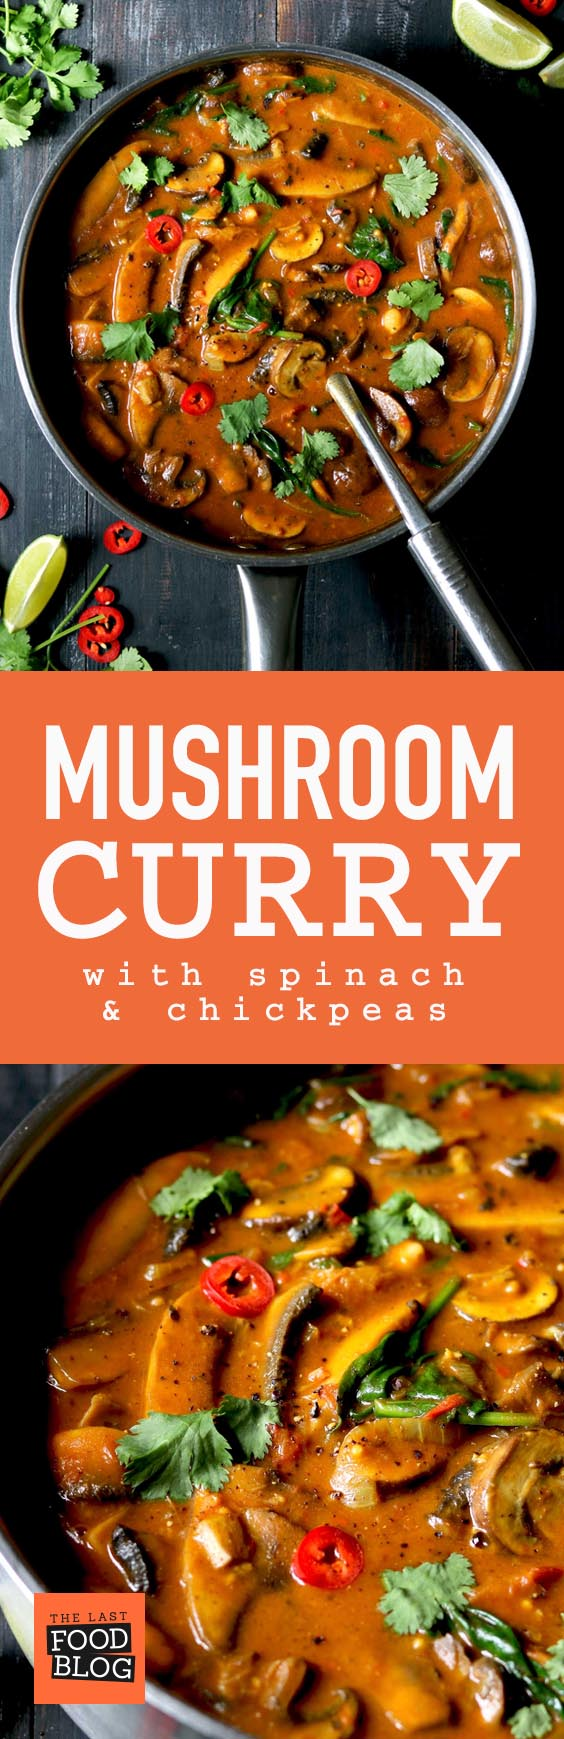 Mushroom Curry with Spinach & Chickpeas - thelastfoodblog.com